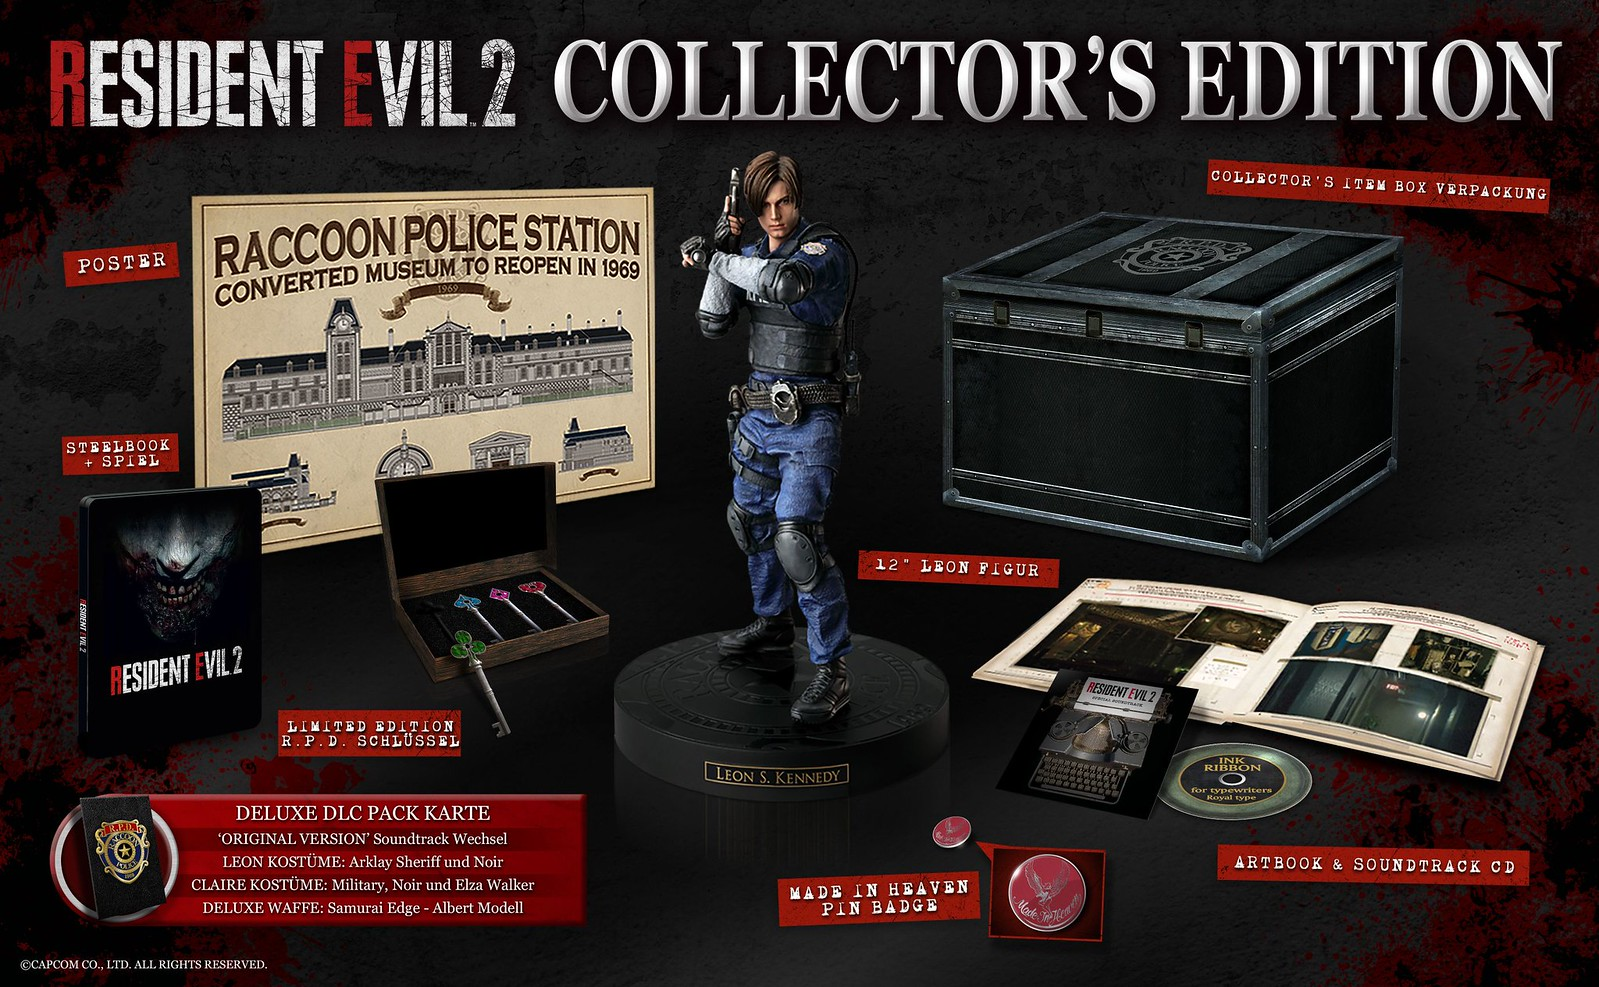 Resident-Evil-2-Special-Edition-Packshot_DACH_S